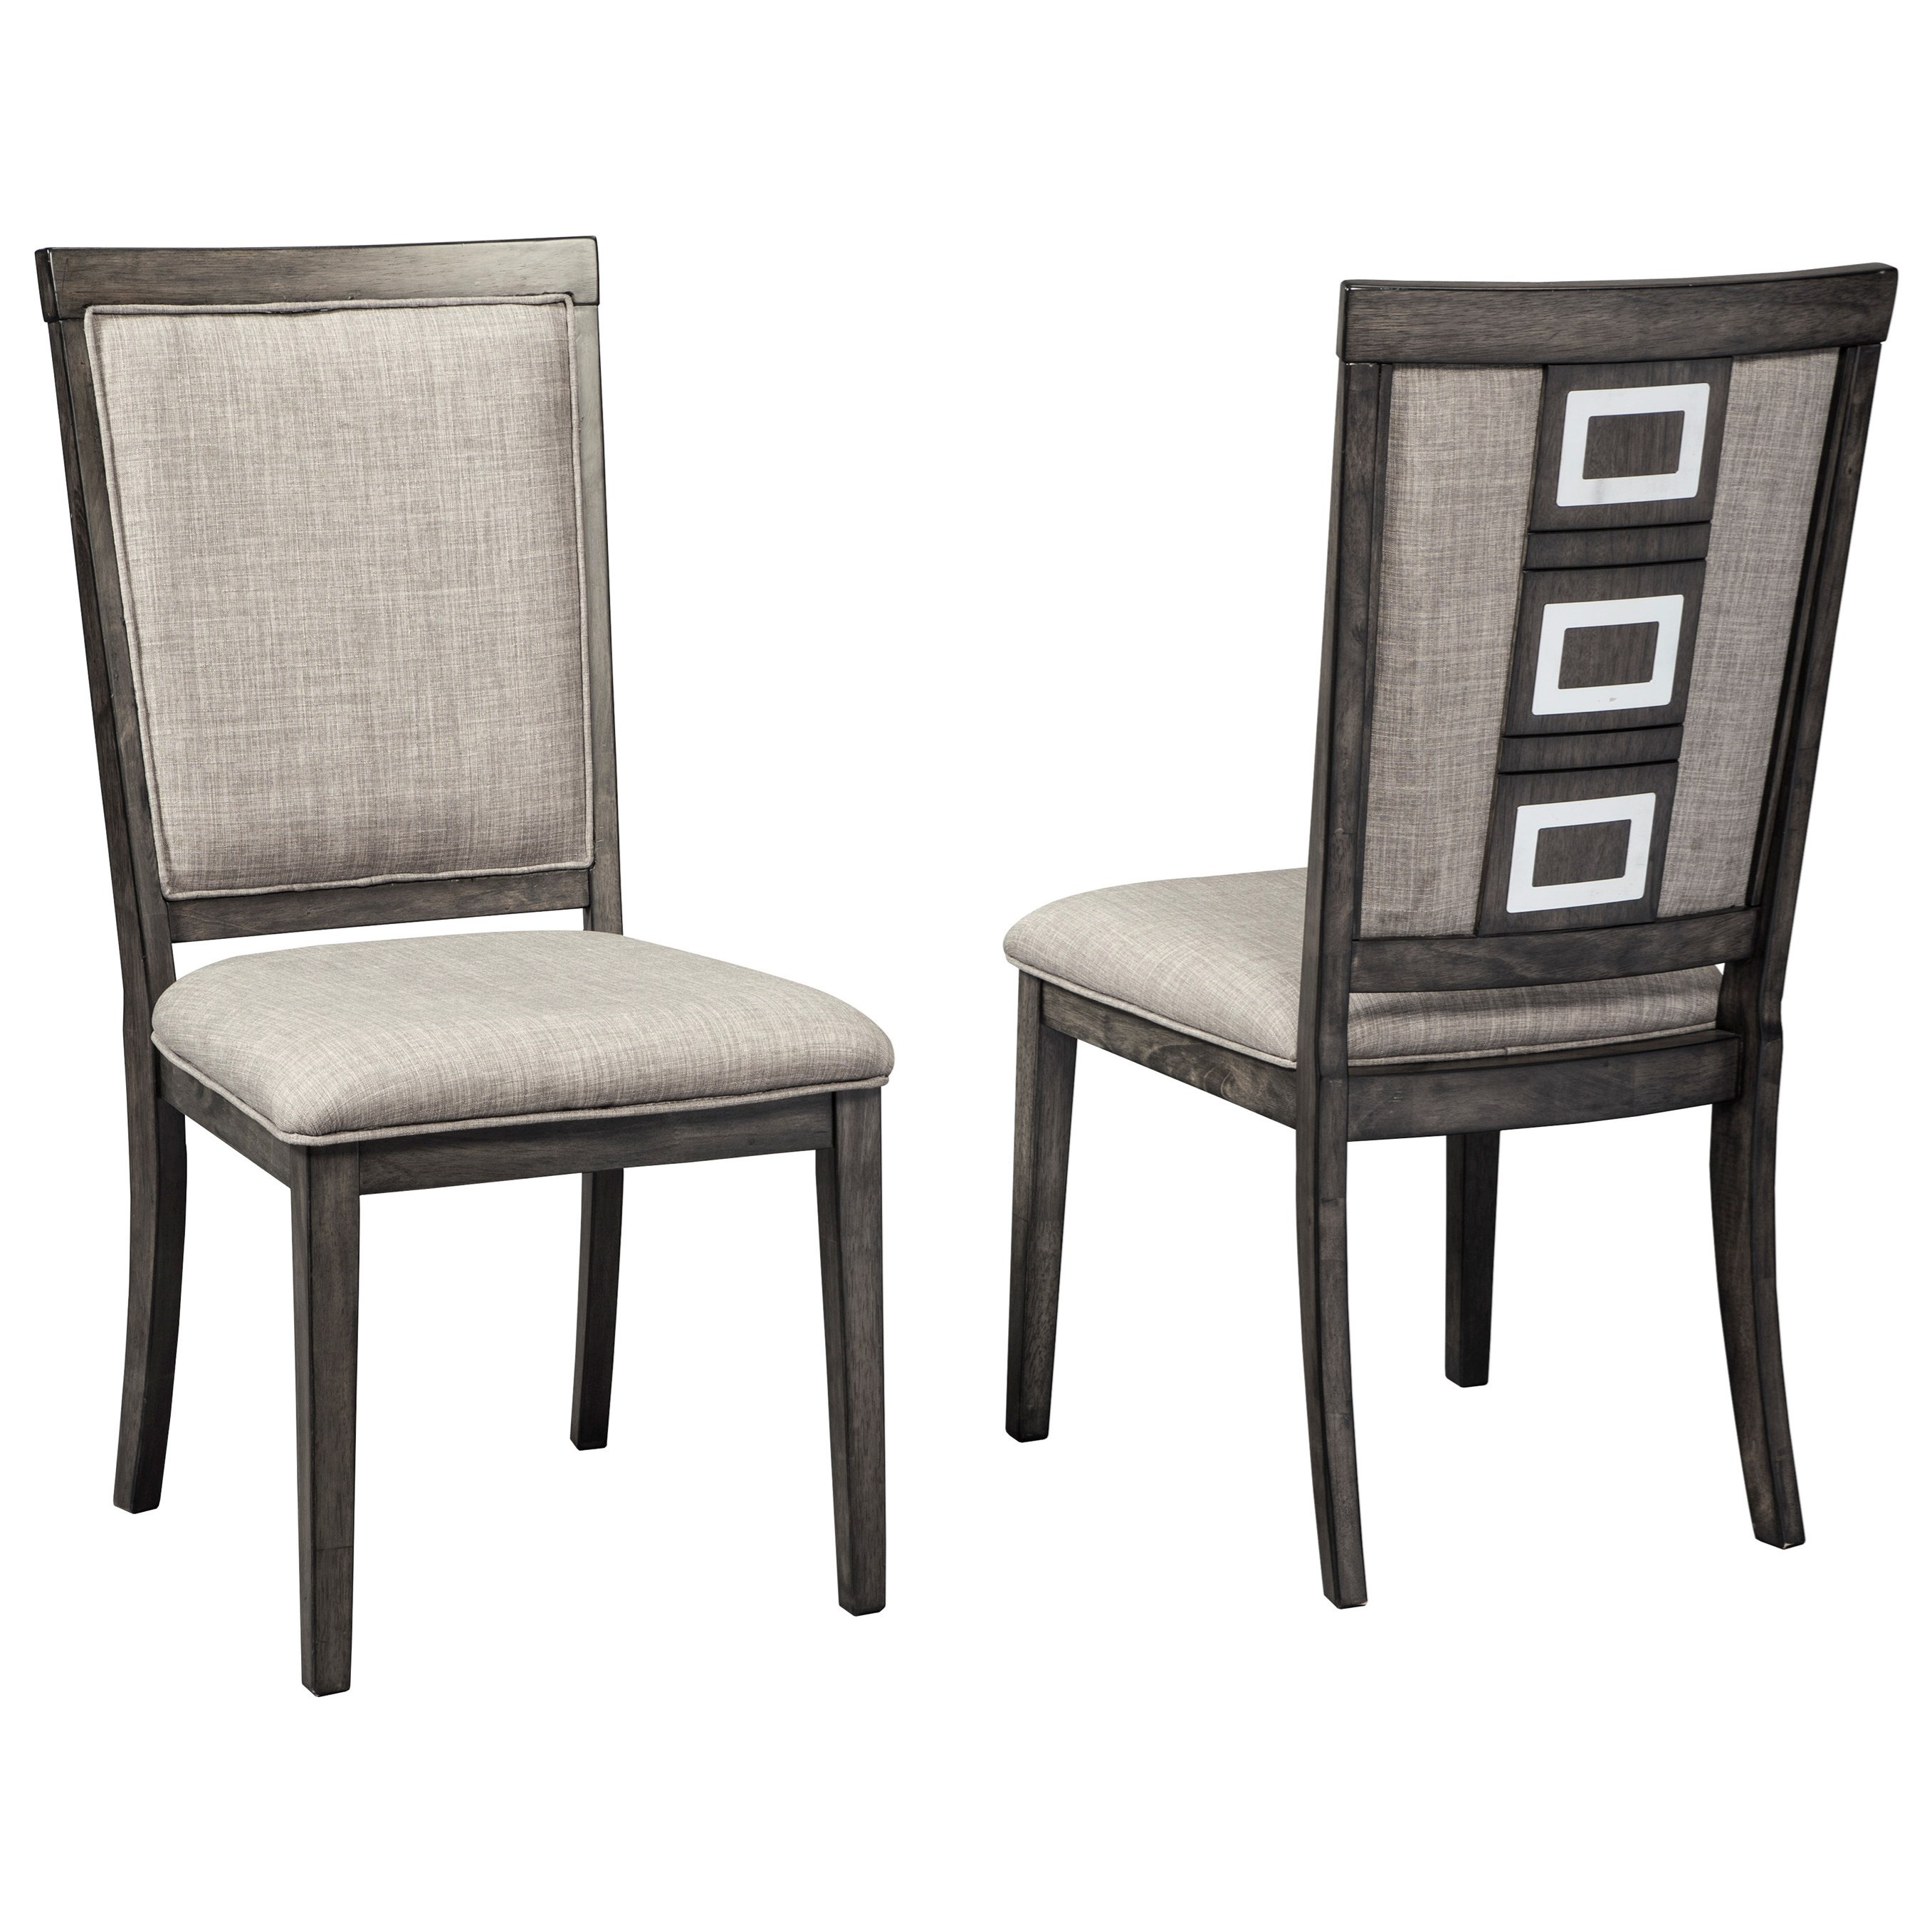 Signature Design by Ashley Chadoni Upholstered Side Chair - Item Number: D624-01